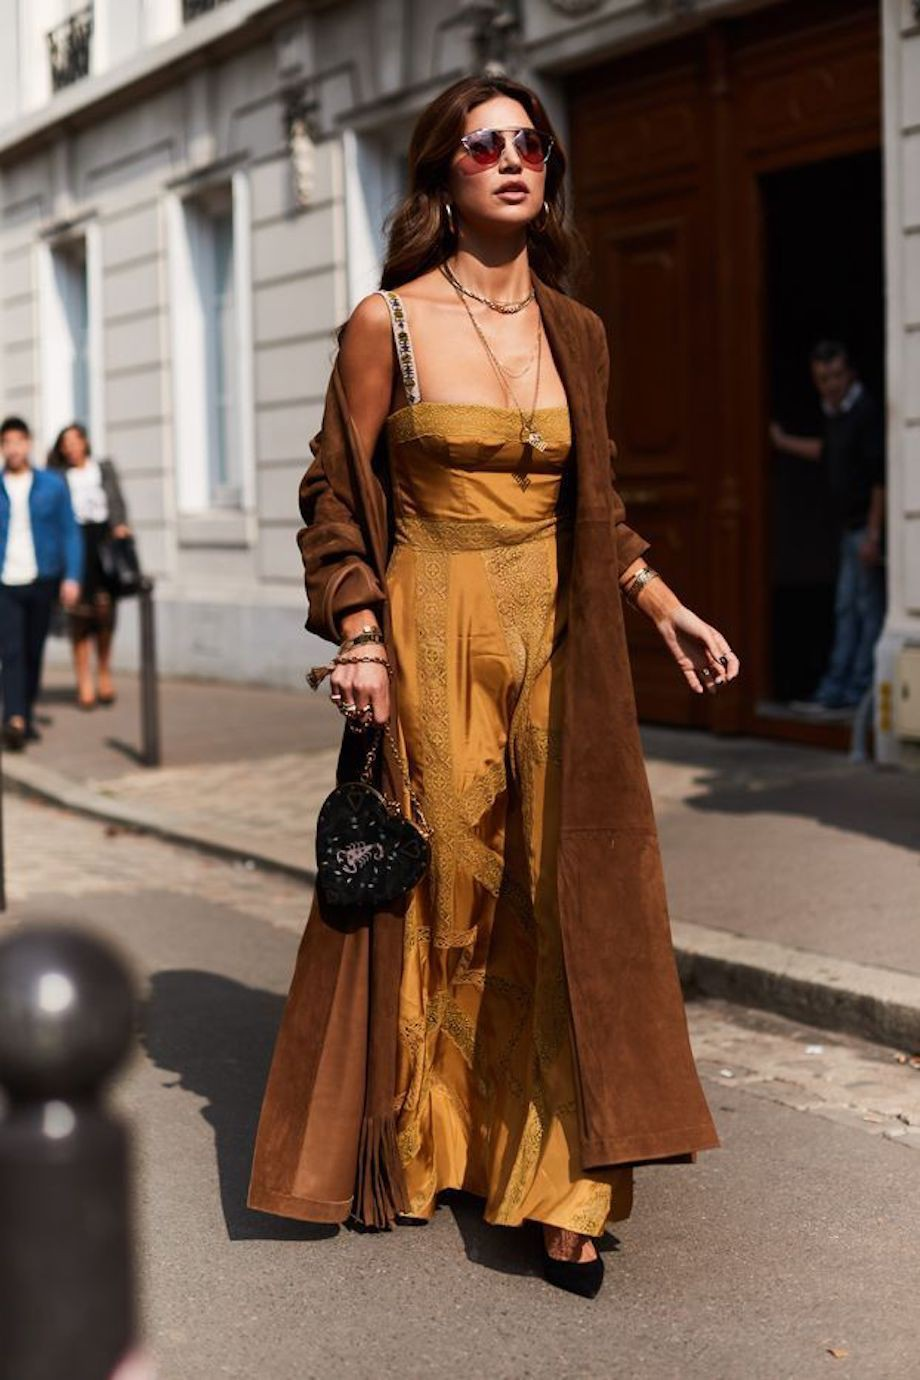 Colour outfit ideas 2020 street style brown paris fashion week, fashion design